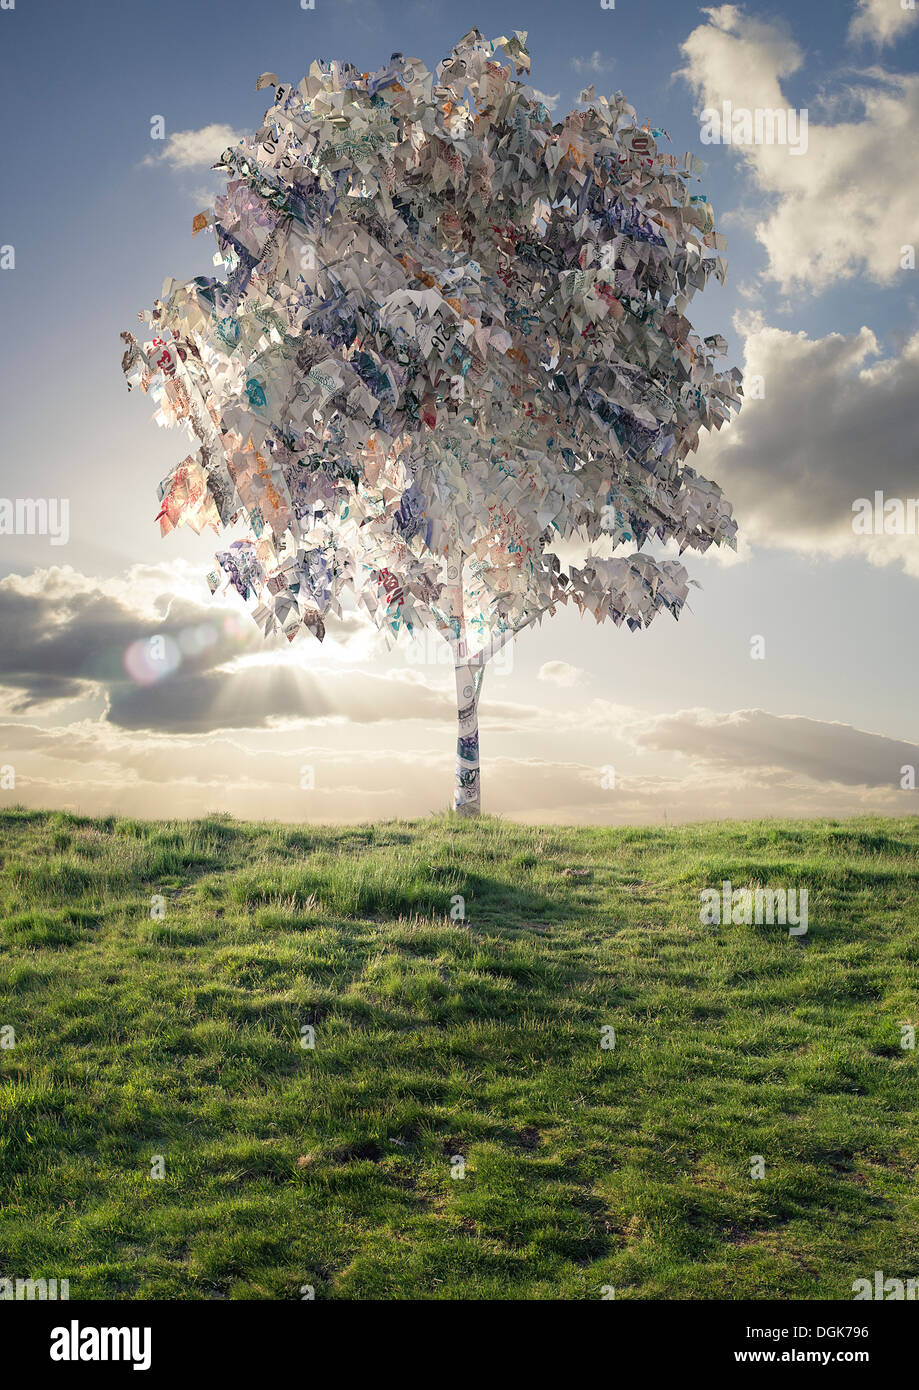 Model of tree with British bank notes foliage - Stock Image